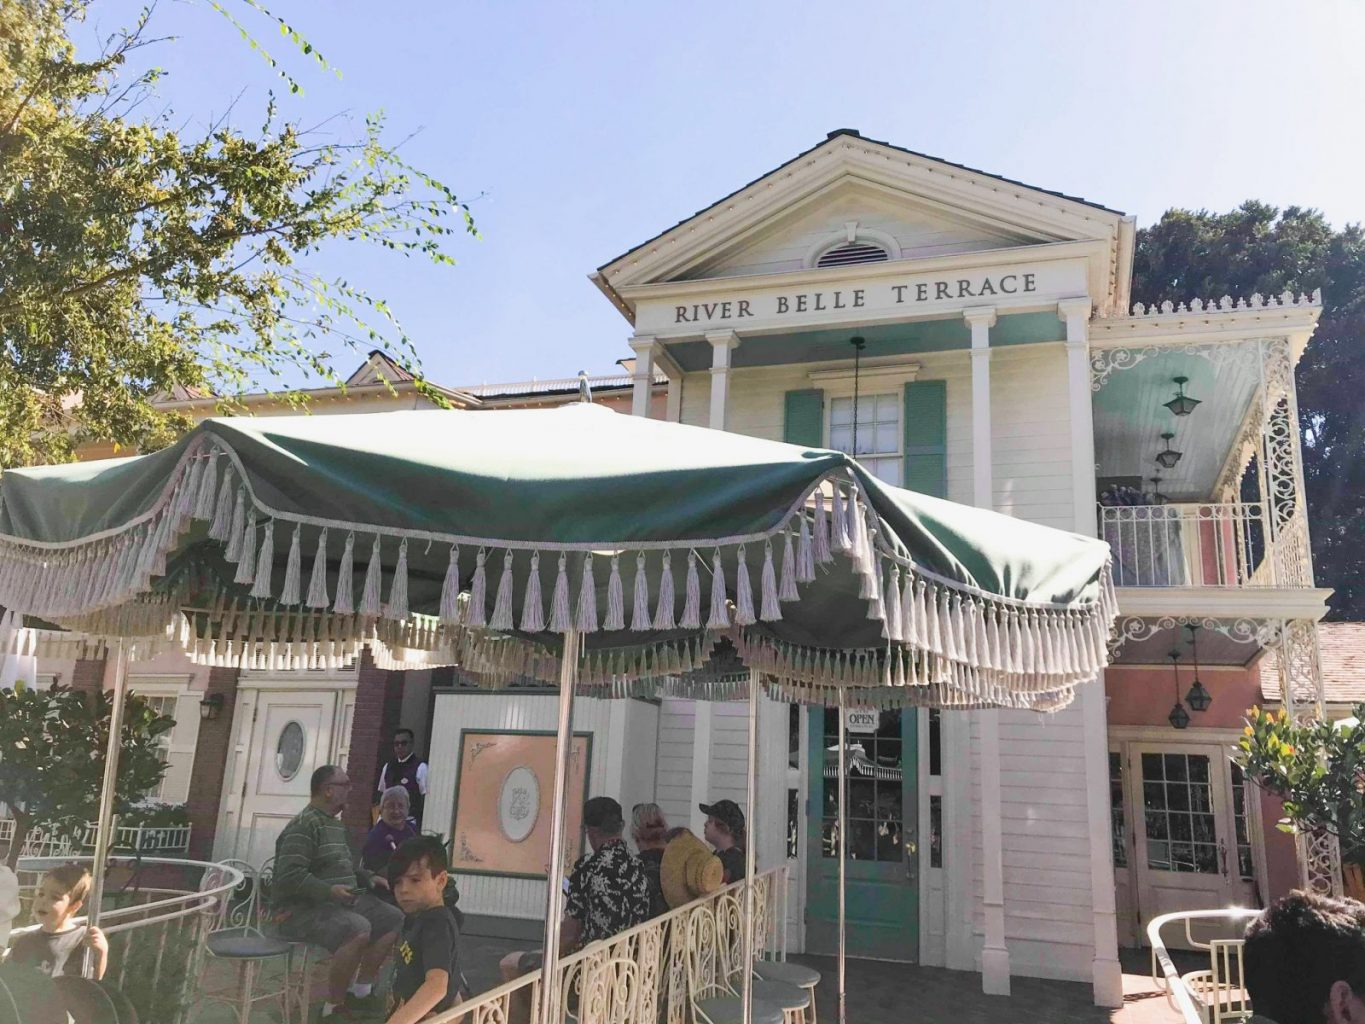 The quaint Disneyland restaurant, River Belle Terrace